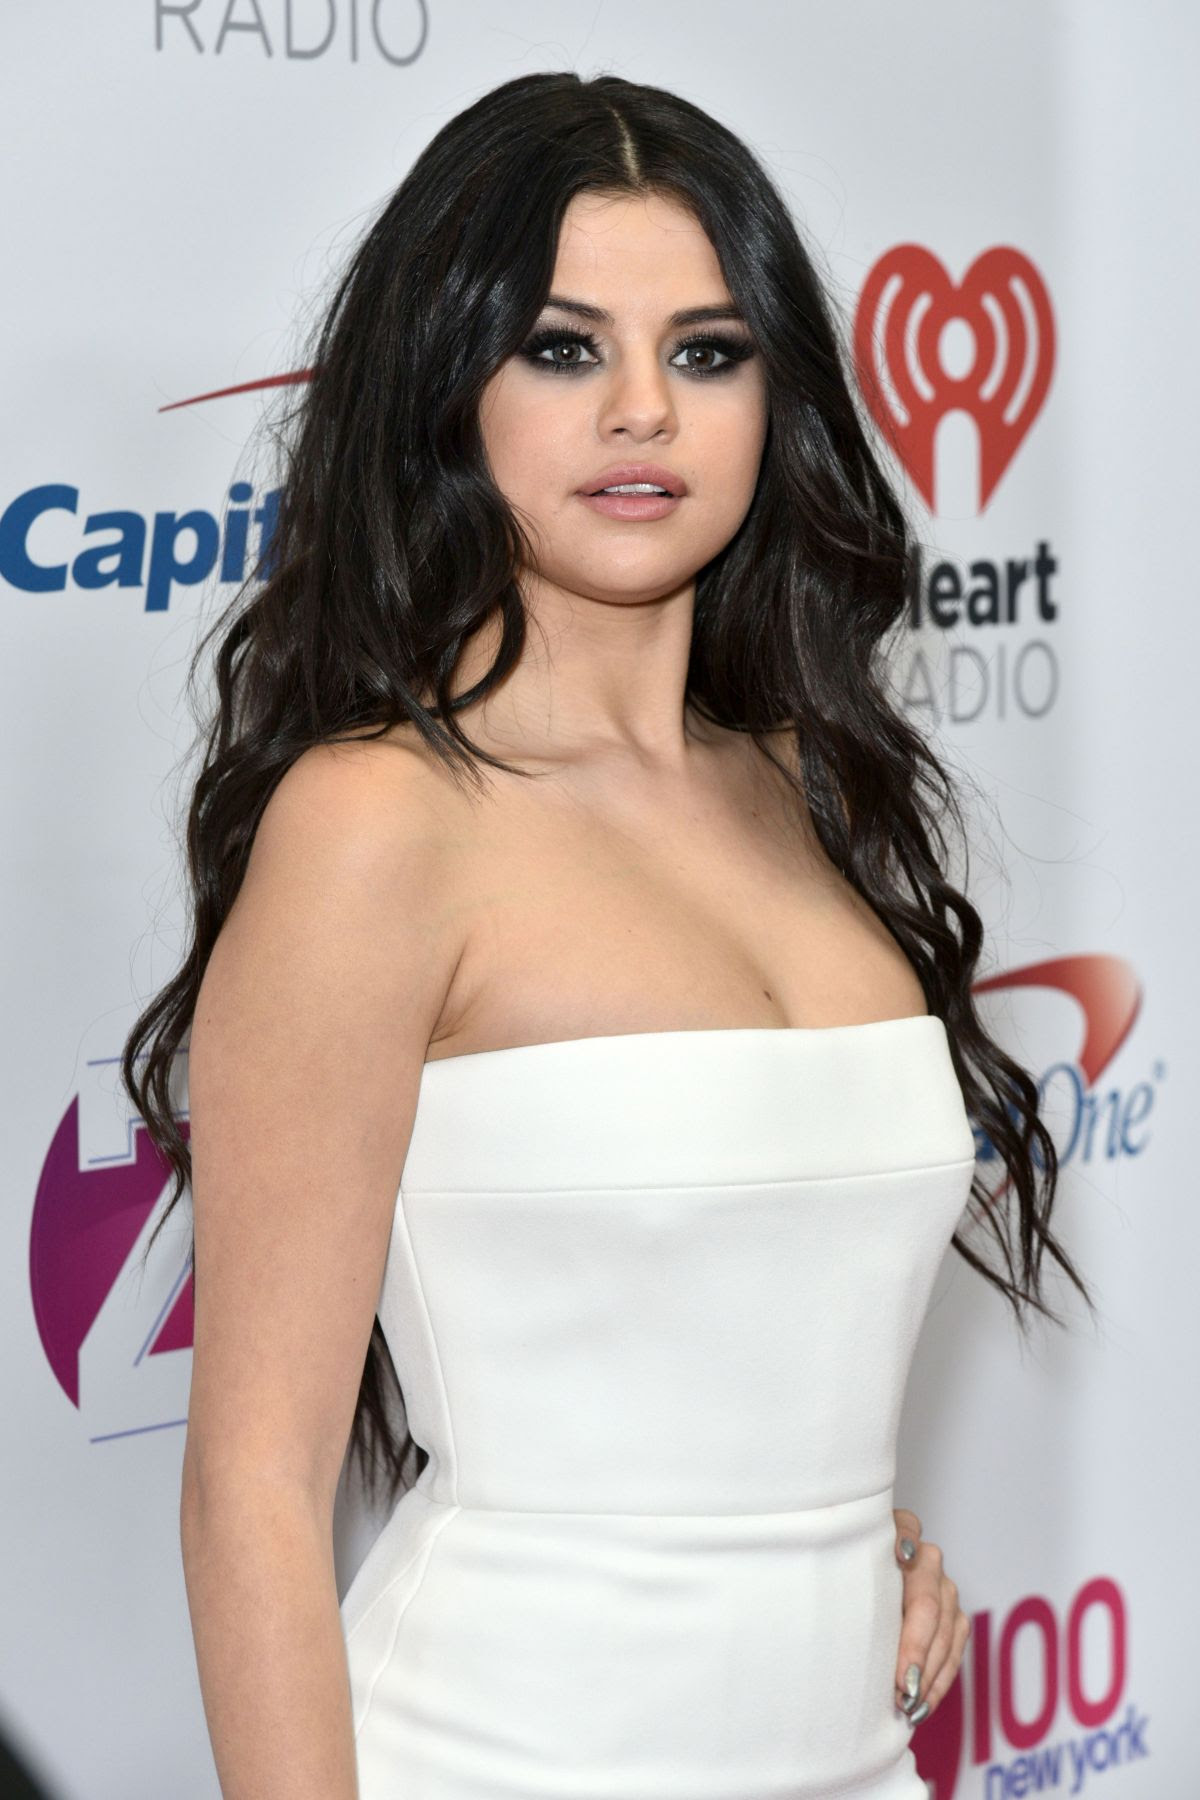 SELENA GOMEZ at Z100's Jingle Ball 2015 in New York 12/11/2015